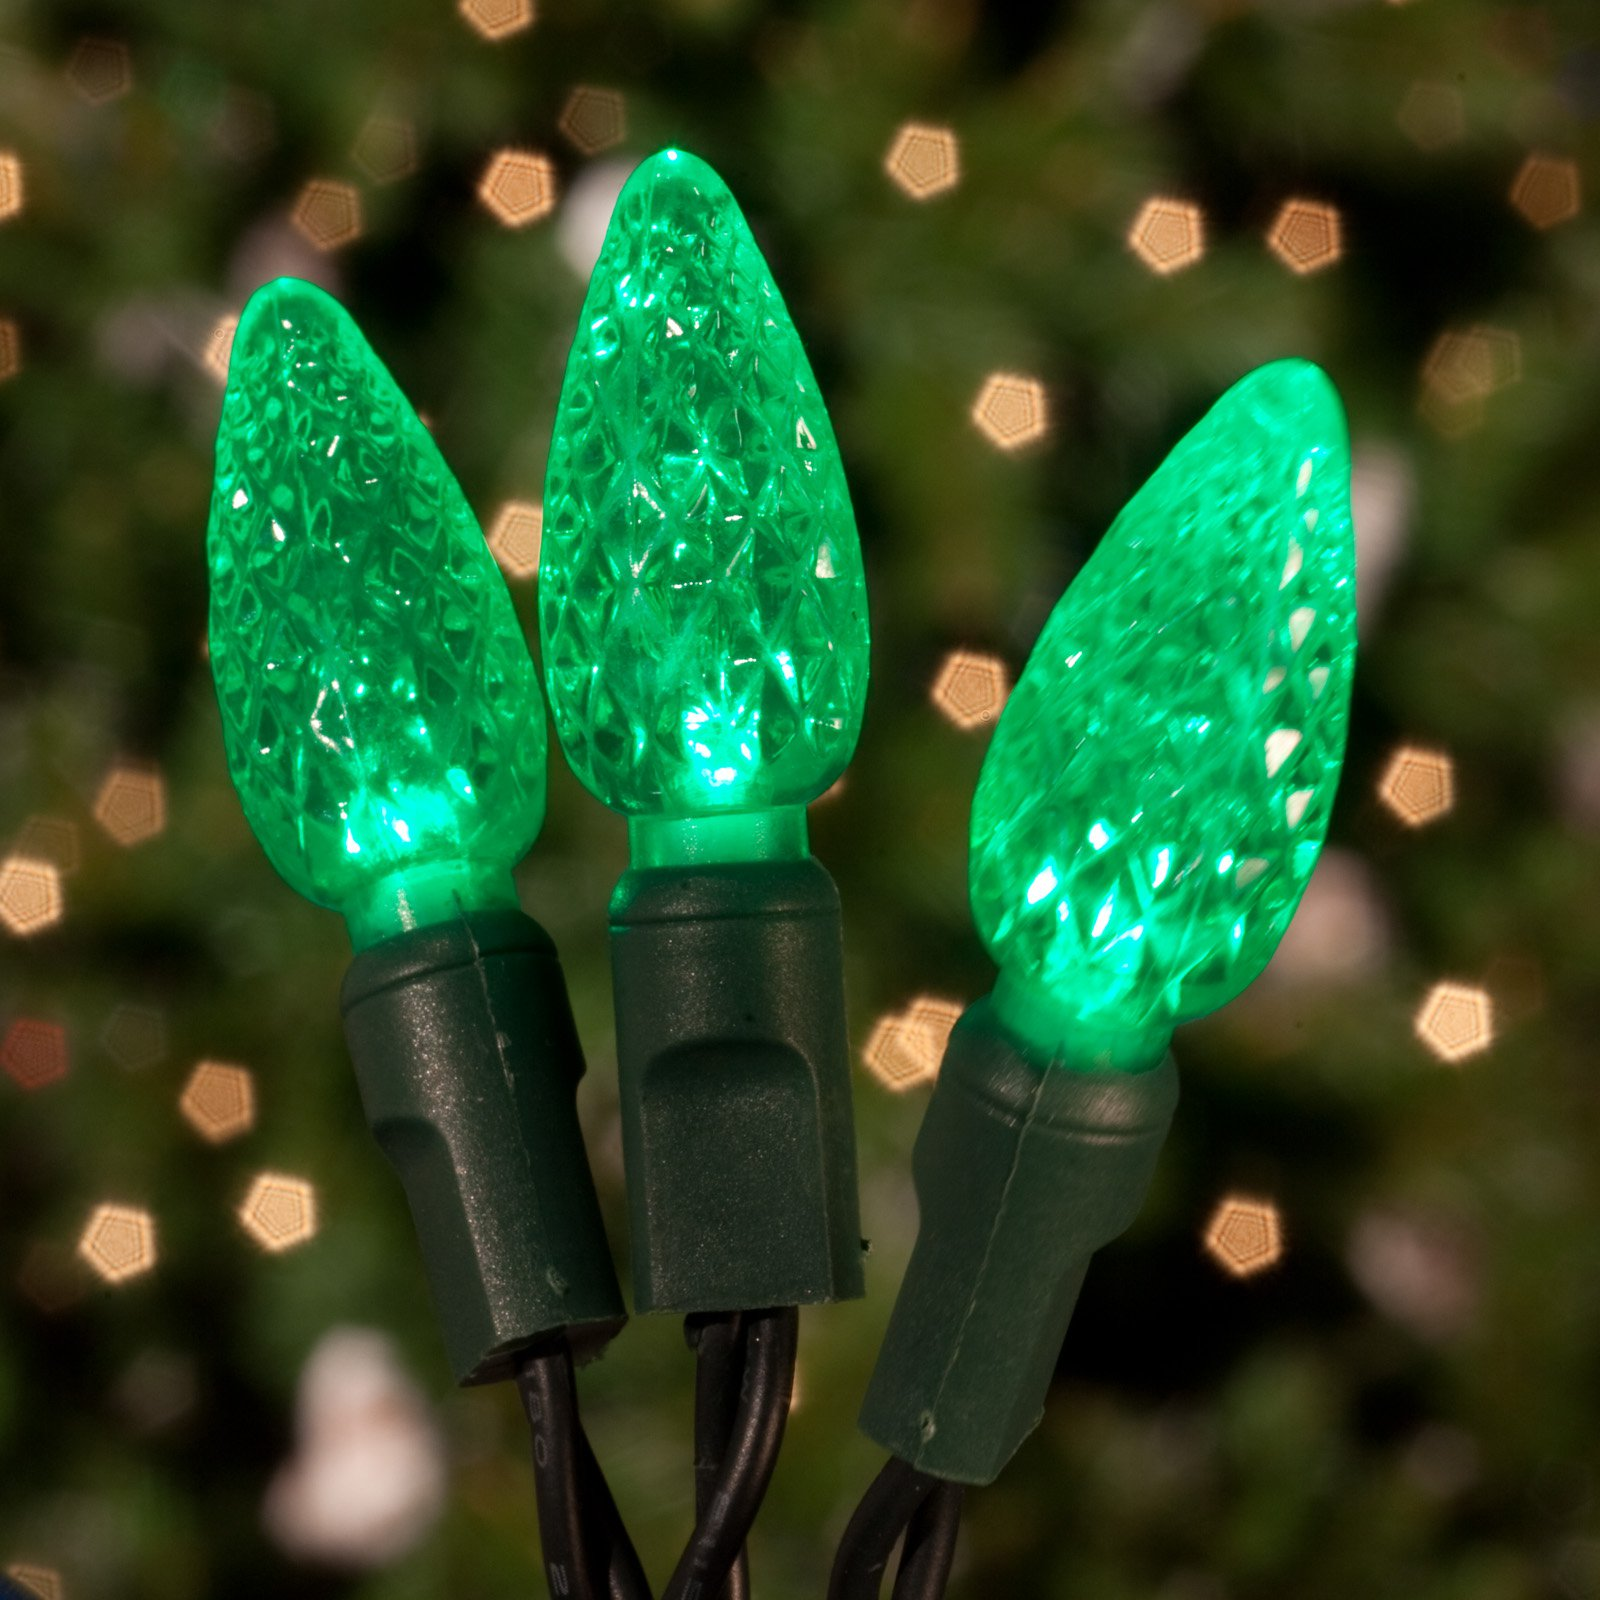 Commercial 70 ct. Green Strawberry LED Lights with 6 in. Spacing (Case)